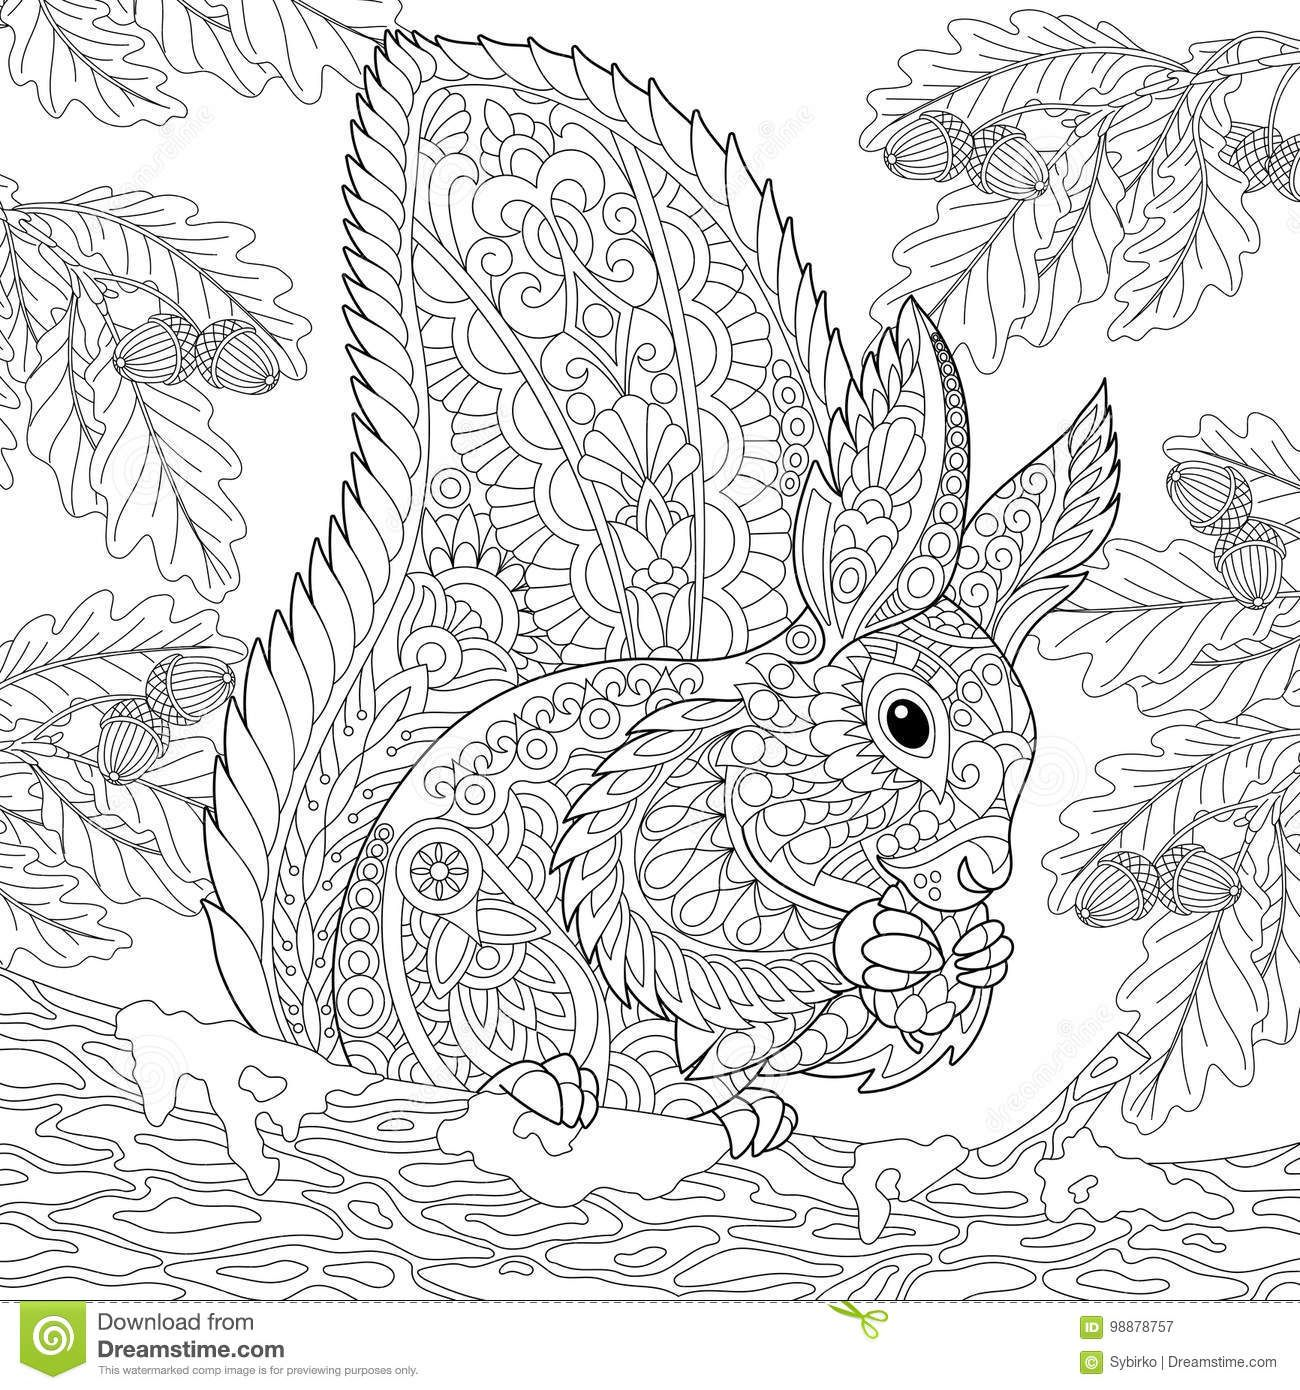 Pin By Aaatelye On Adult Coloring